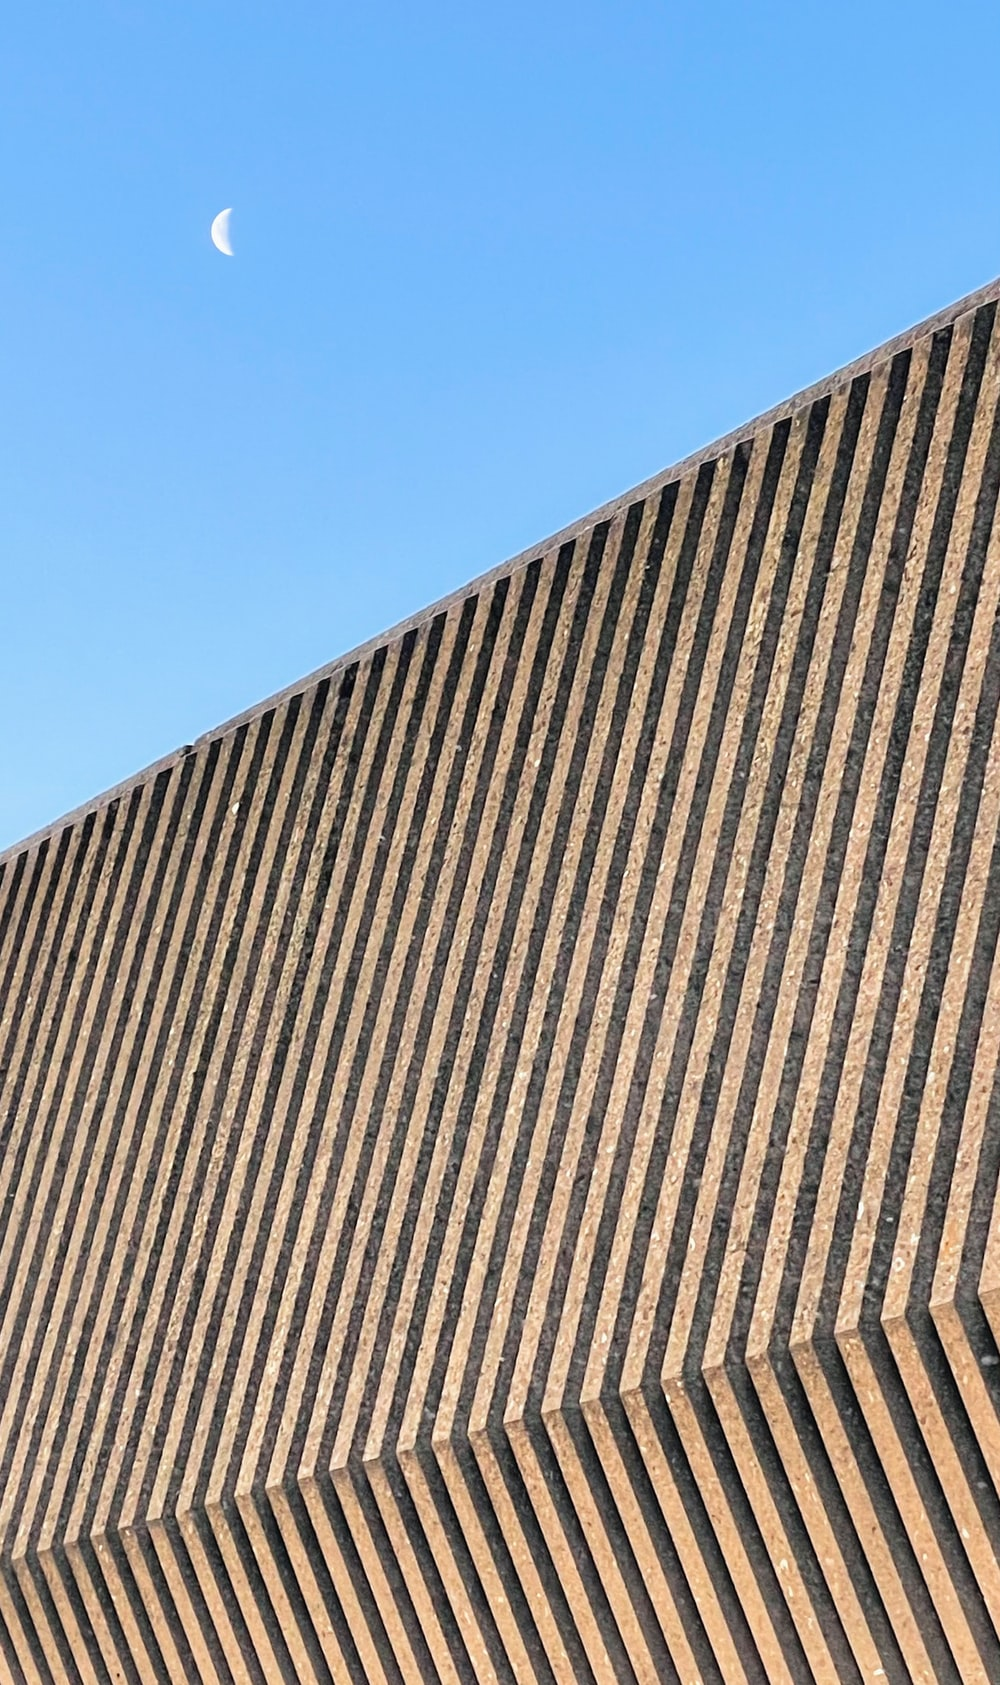 brown and black concrete building under blue sky during daytime